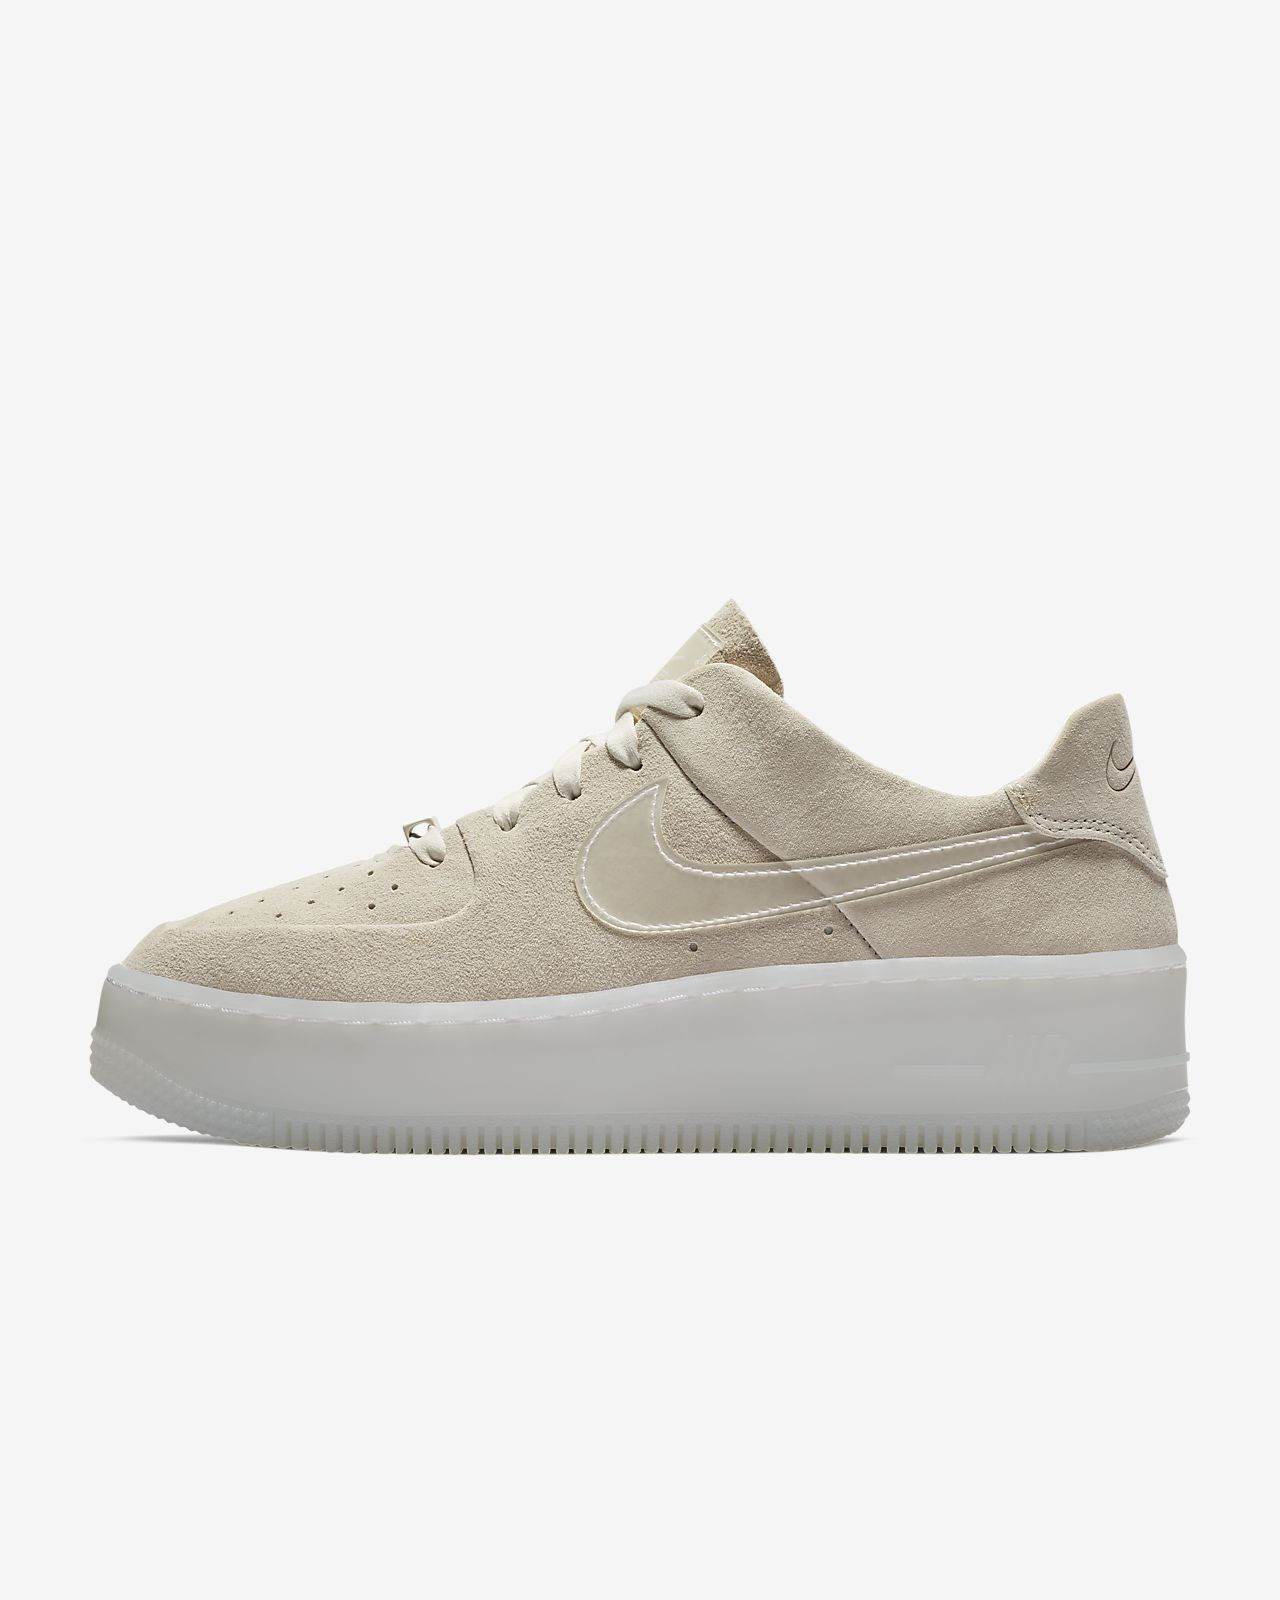 promo code c466d 92c33 Nike Air Force 1 Sage Low LX Zapatillas - Mujer